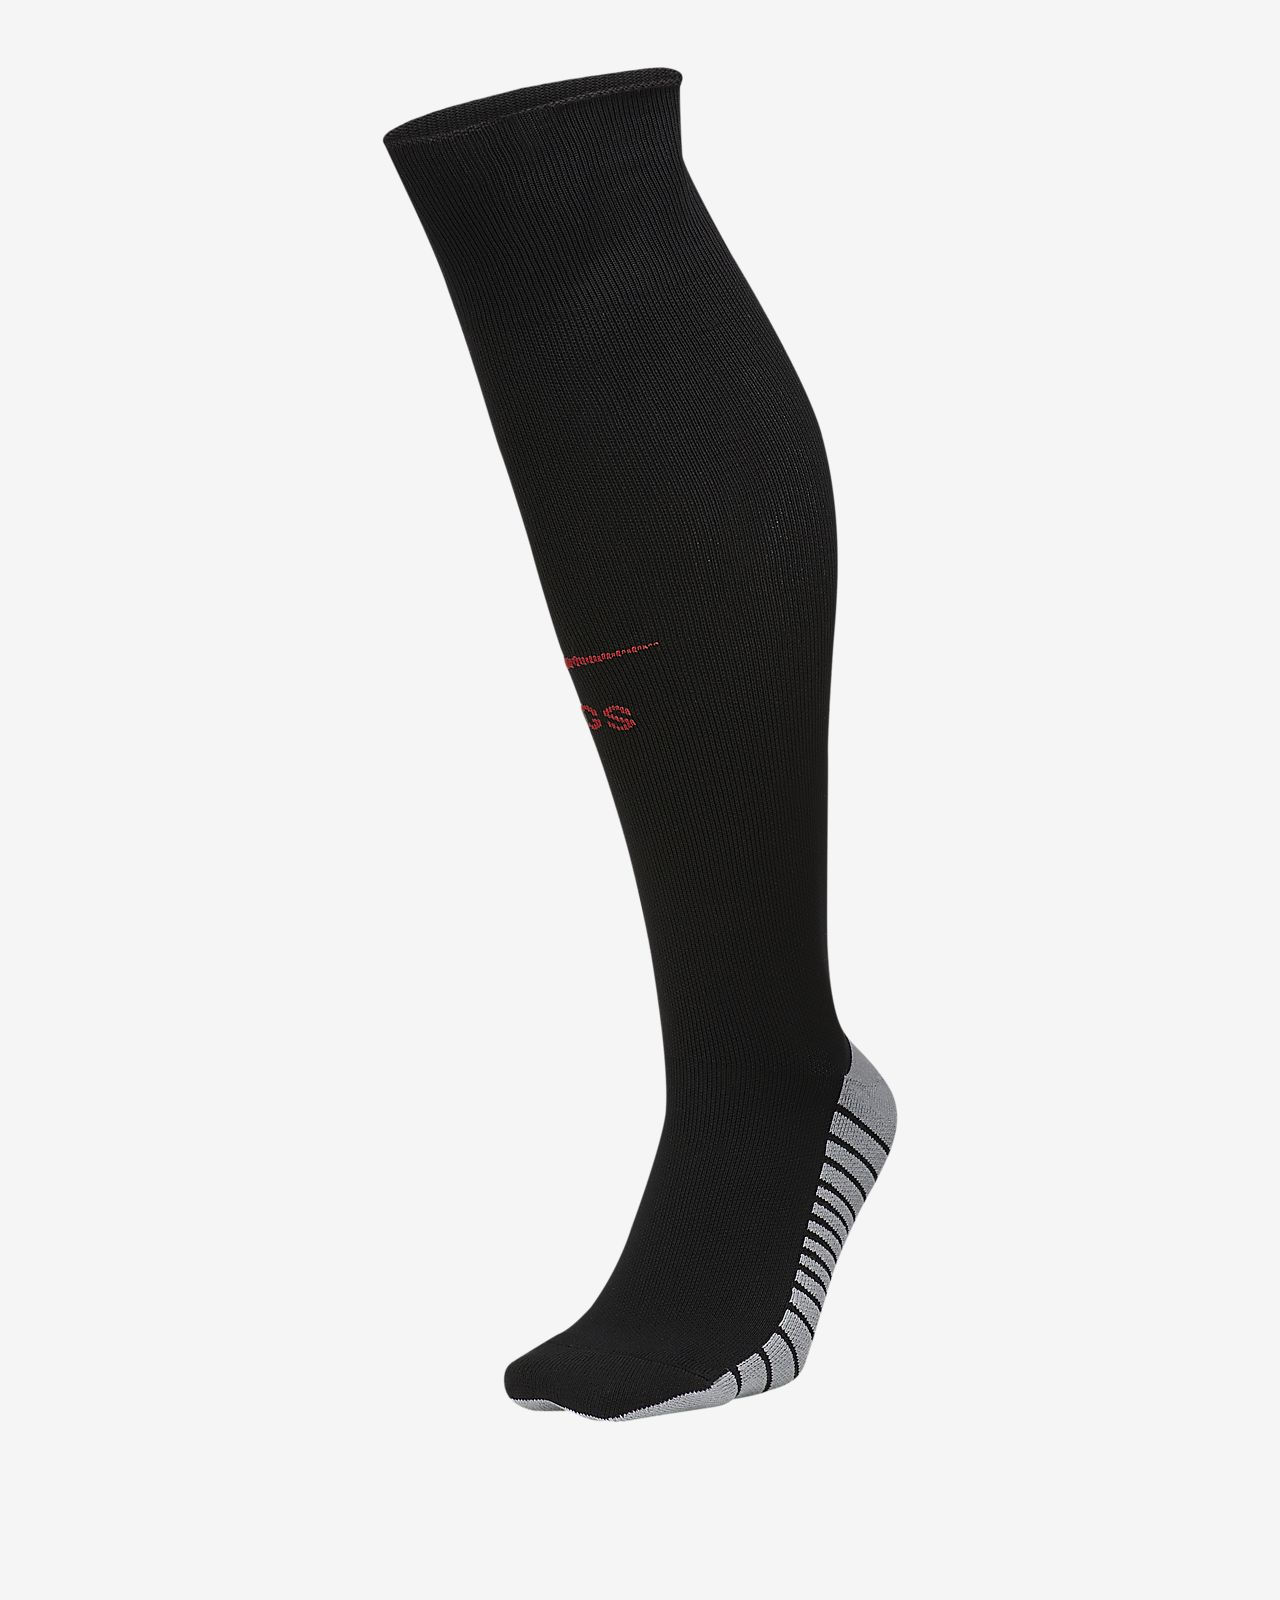 Galatasaray Stadium Home/Away Over-the-Calf Football Socks